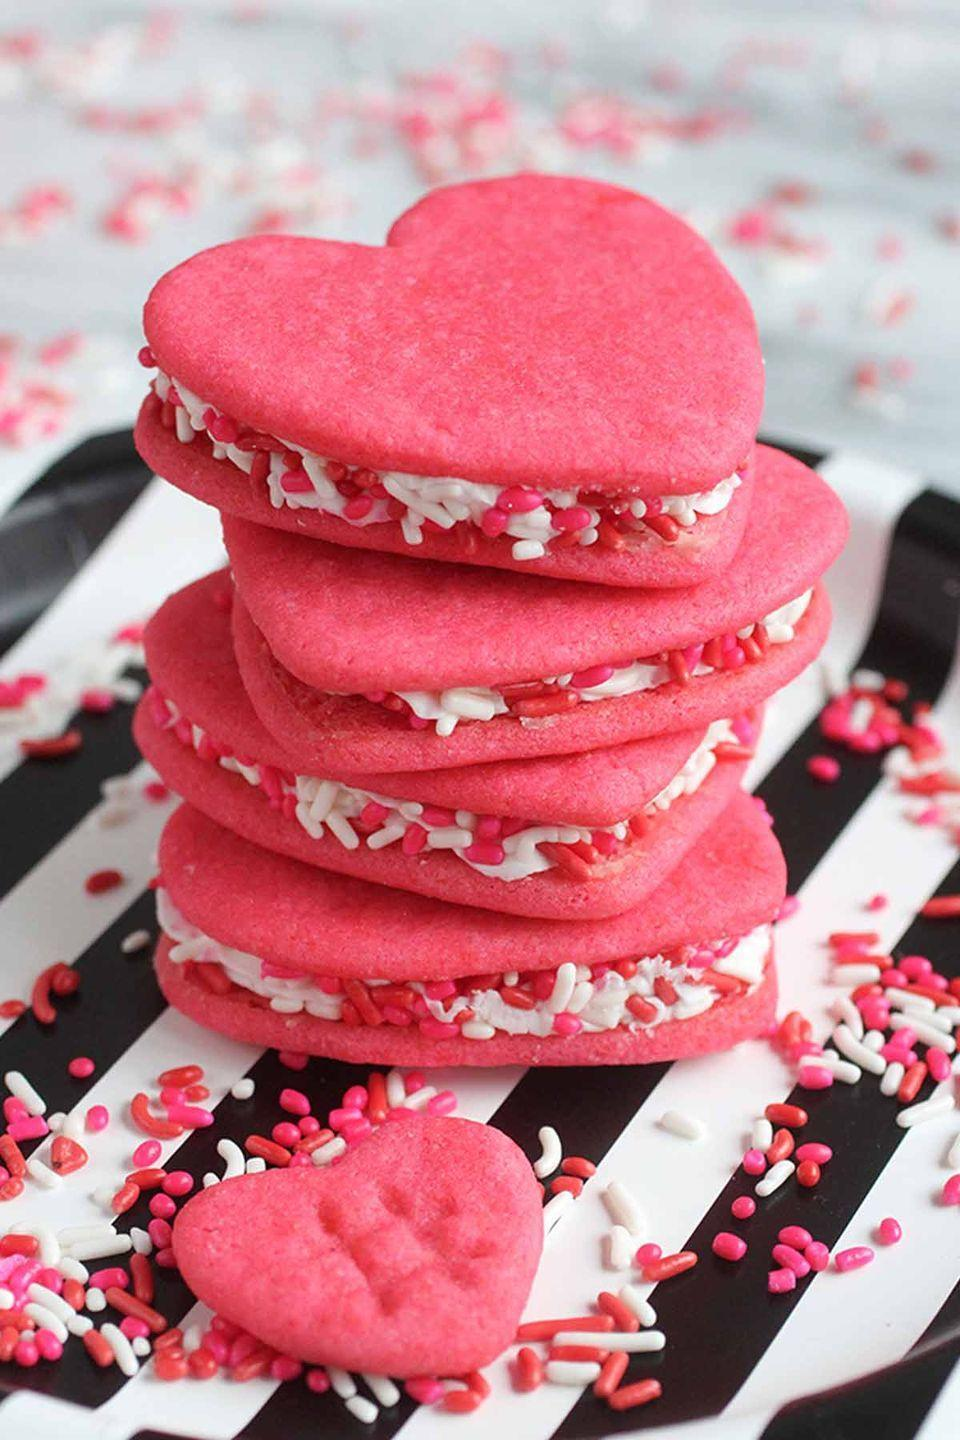 "<p><span class=""redactor-invisible-space"">Sugar, oh honey, now this is the ultimate Valentine's Day cookie sandwich! </span></p><p><strong>Get the recipe at <a href=""https://ispydiy.com/diy-eats-conversation-heart-cookie-sandwich/"" rel=""nofollow noopener"" target=""_blank"" data-ylk=""slk:I Spy DIY"" class=""link rapid-noclick-resp"">I Spy DIY</a>.</strong></p>"